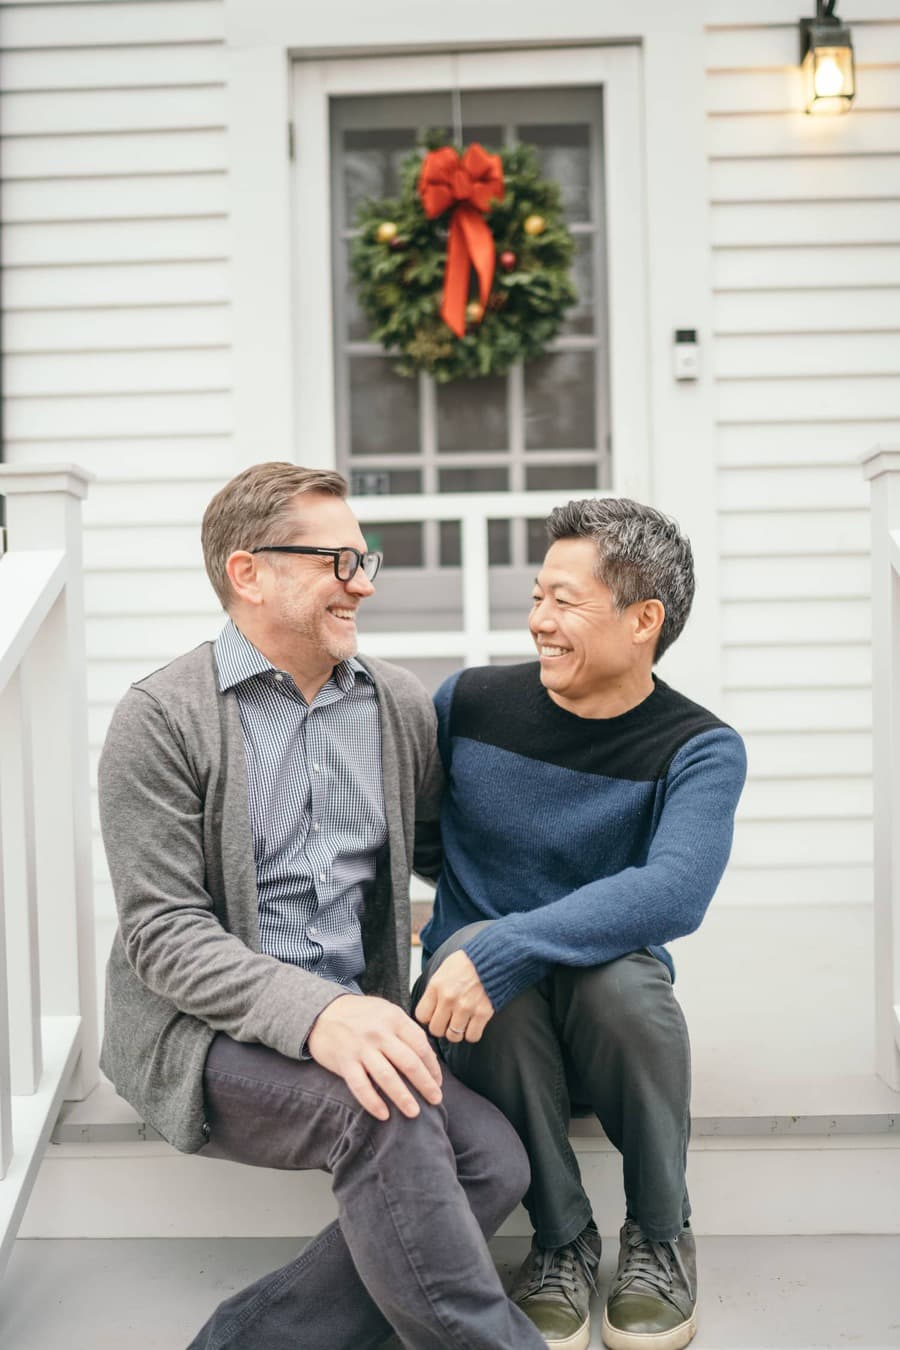 Gay couple sit on porch and smile at each other at Hudson Valley home.